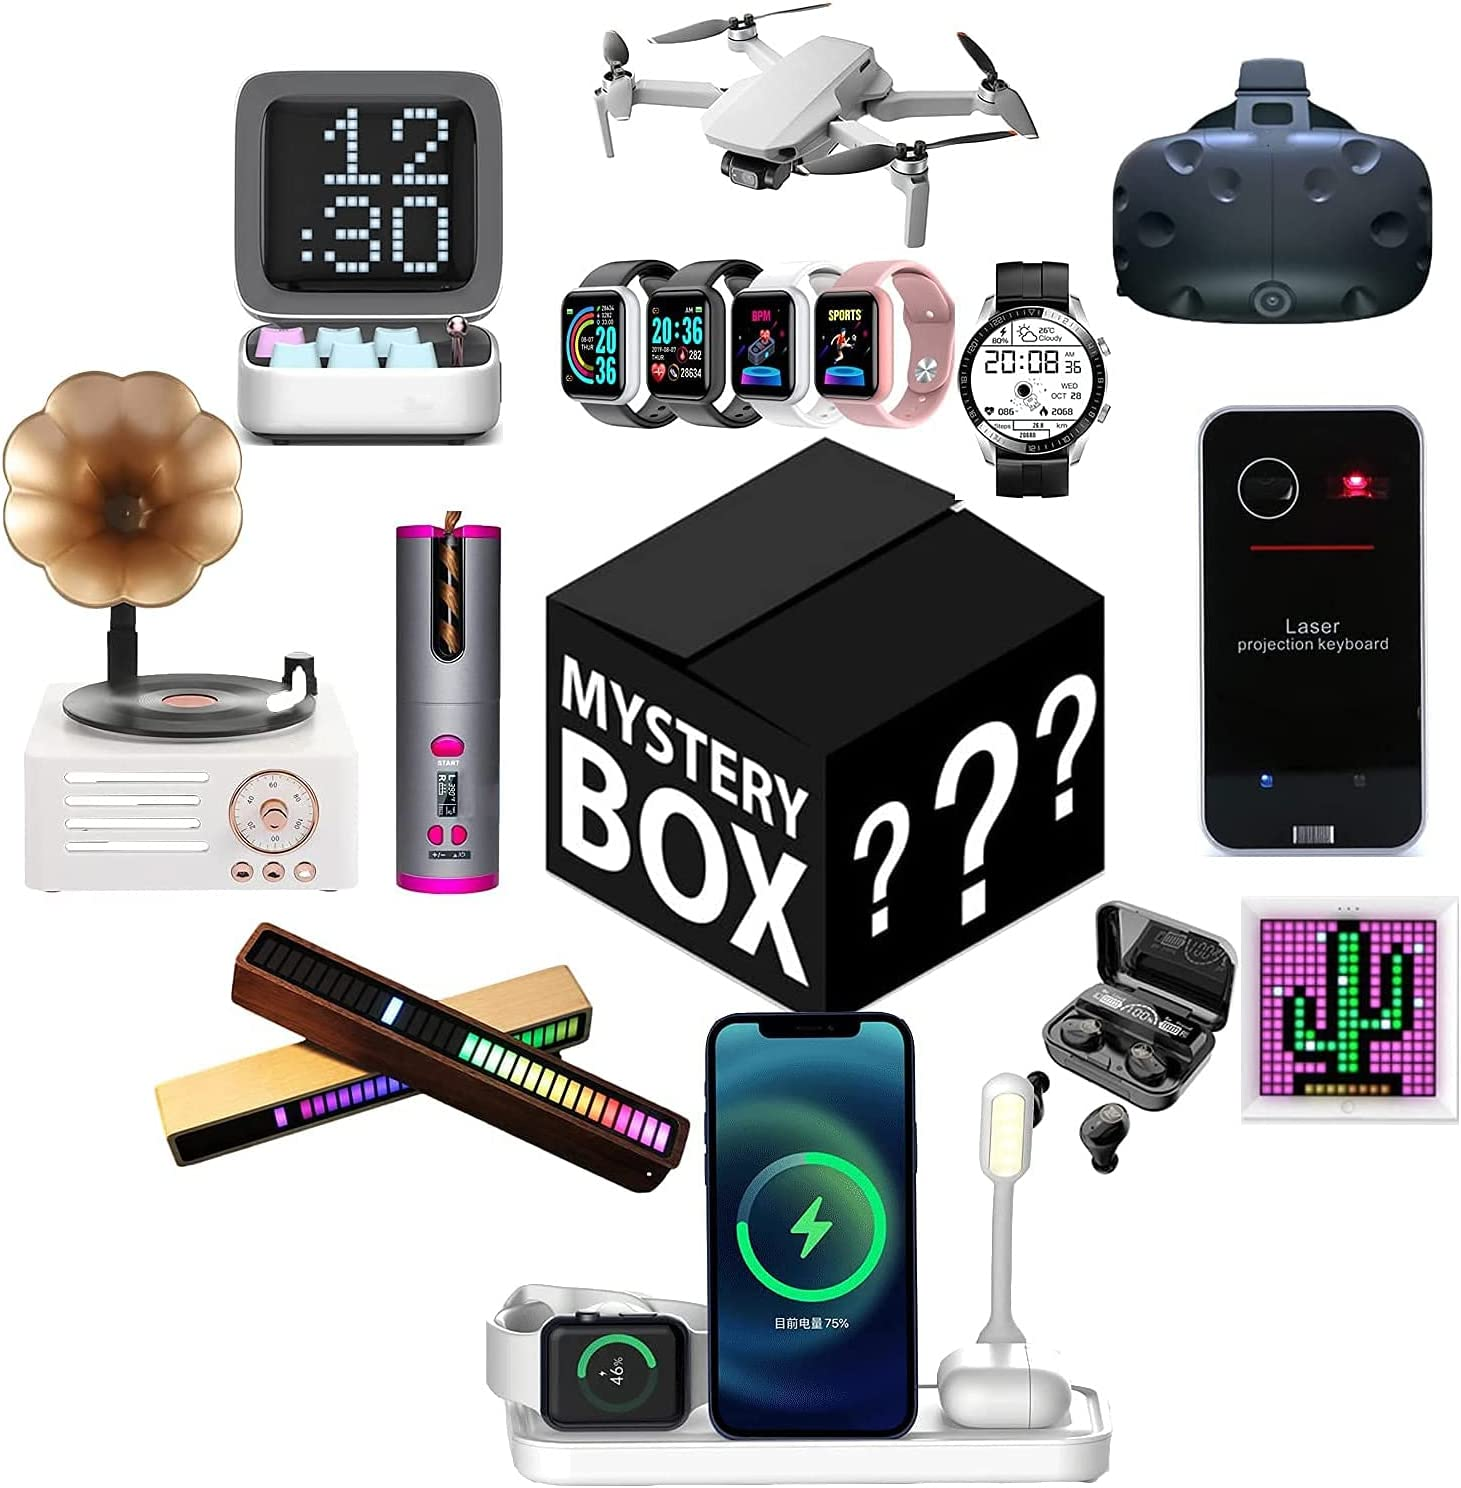 Mystery Box Electronics Boxes Birthday Random Surprise Sales of SALE items from Max 64% OFF new works